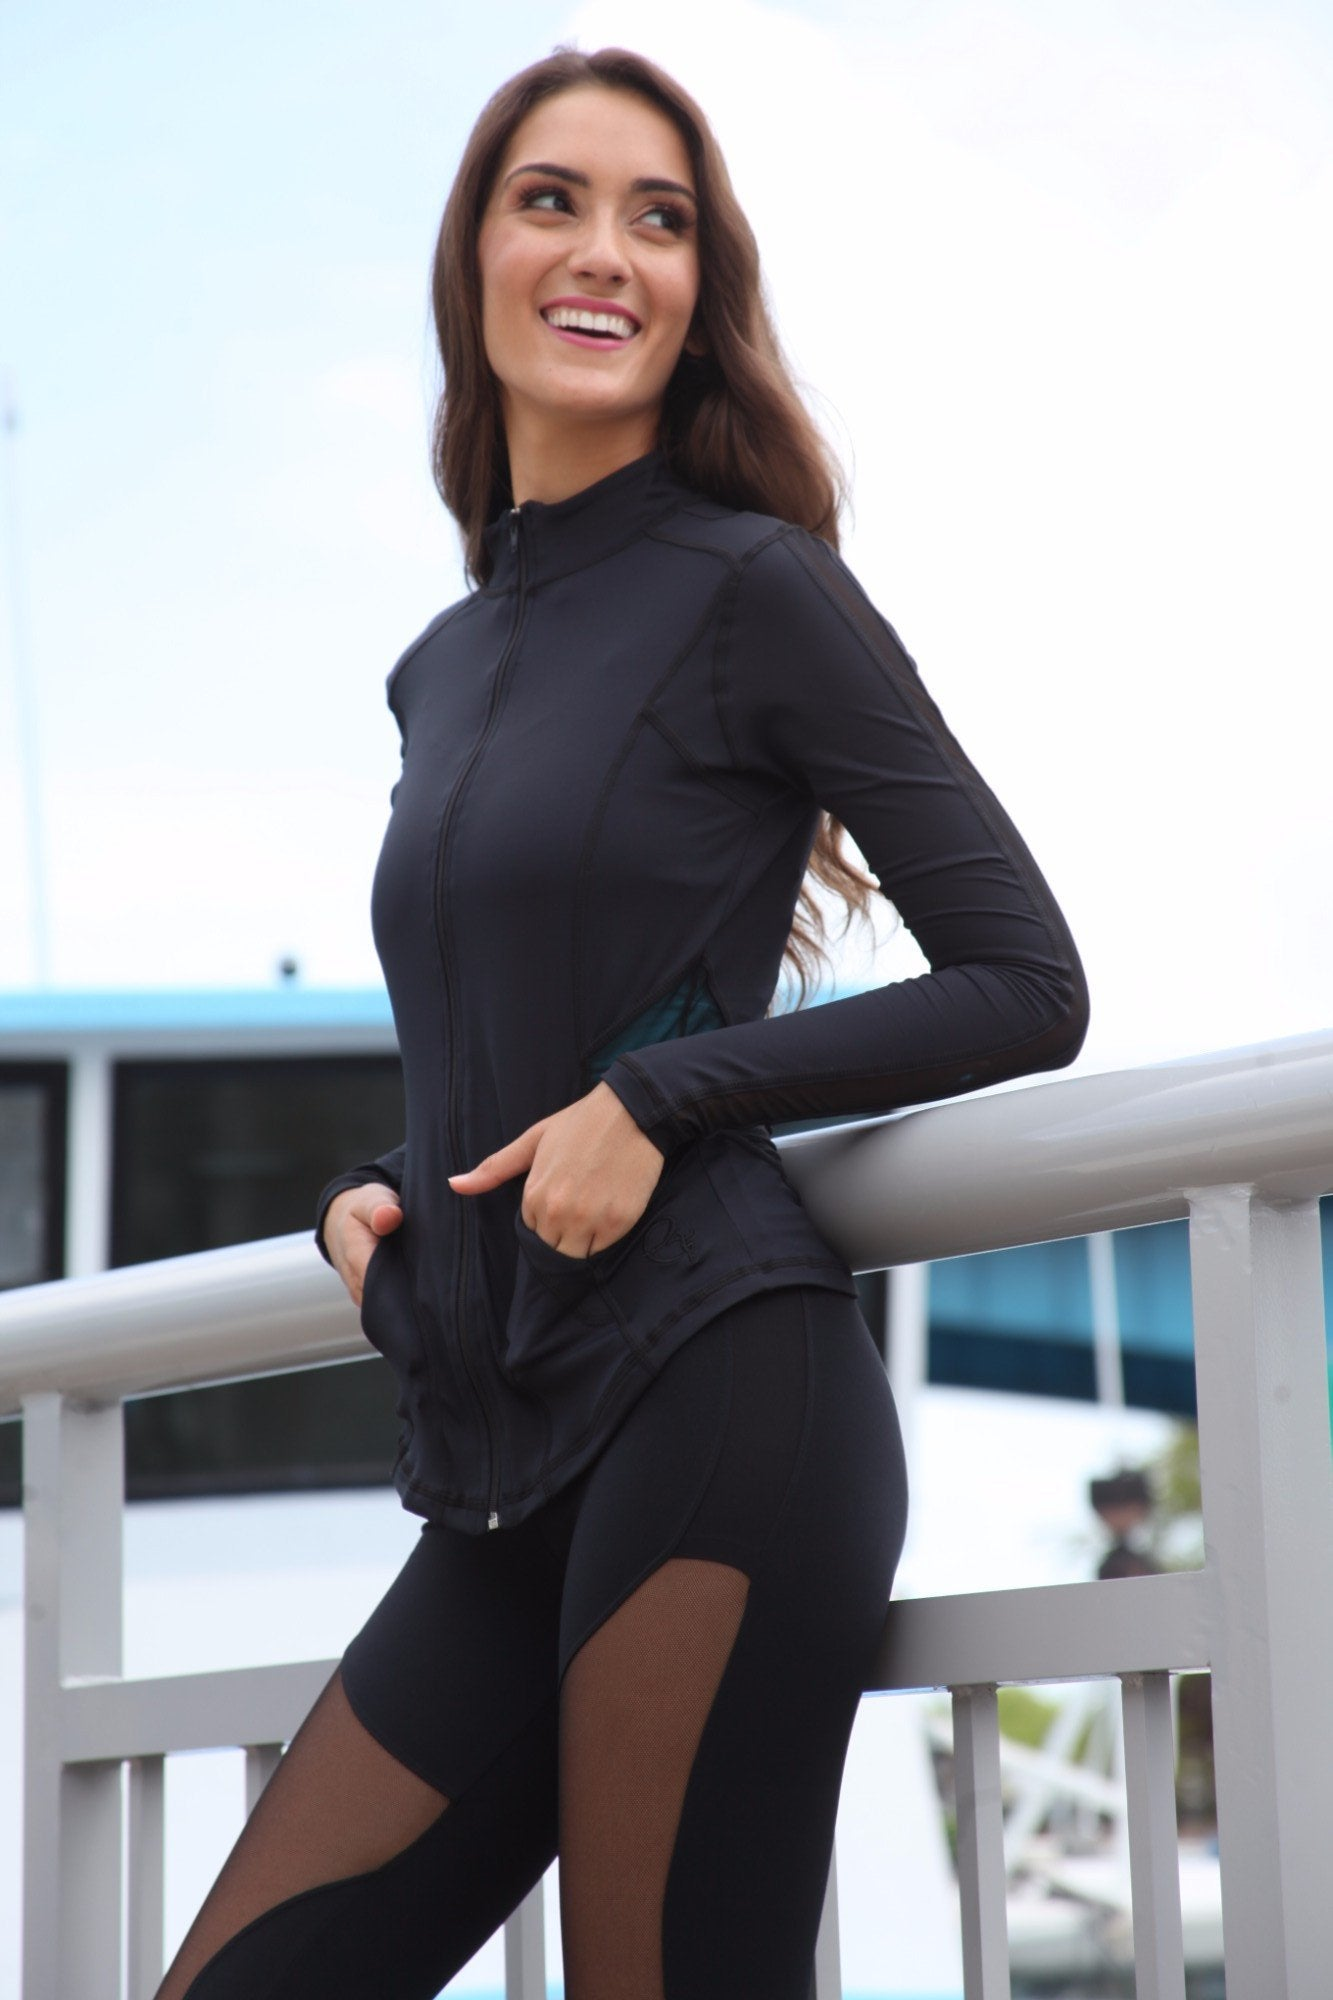 Designer Black Long Top with Long Sleeve J818 - Equilibrium Activewear - Image 4